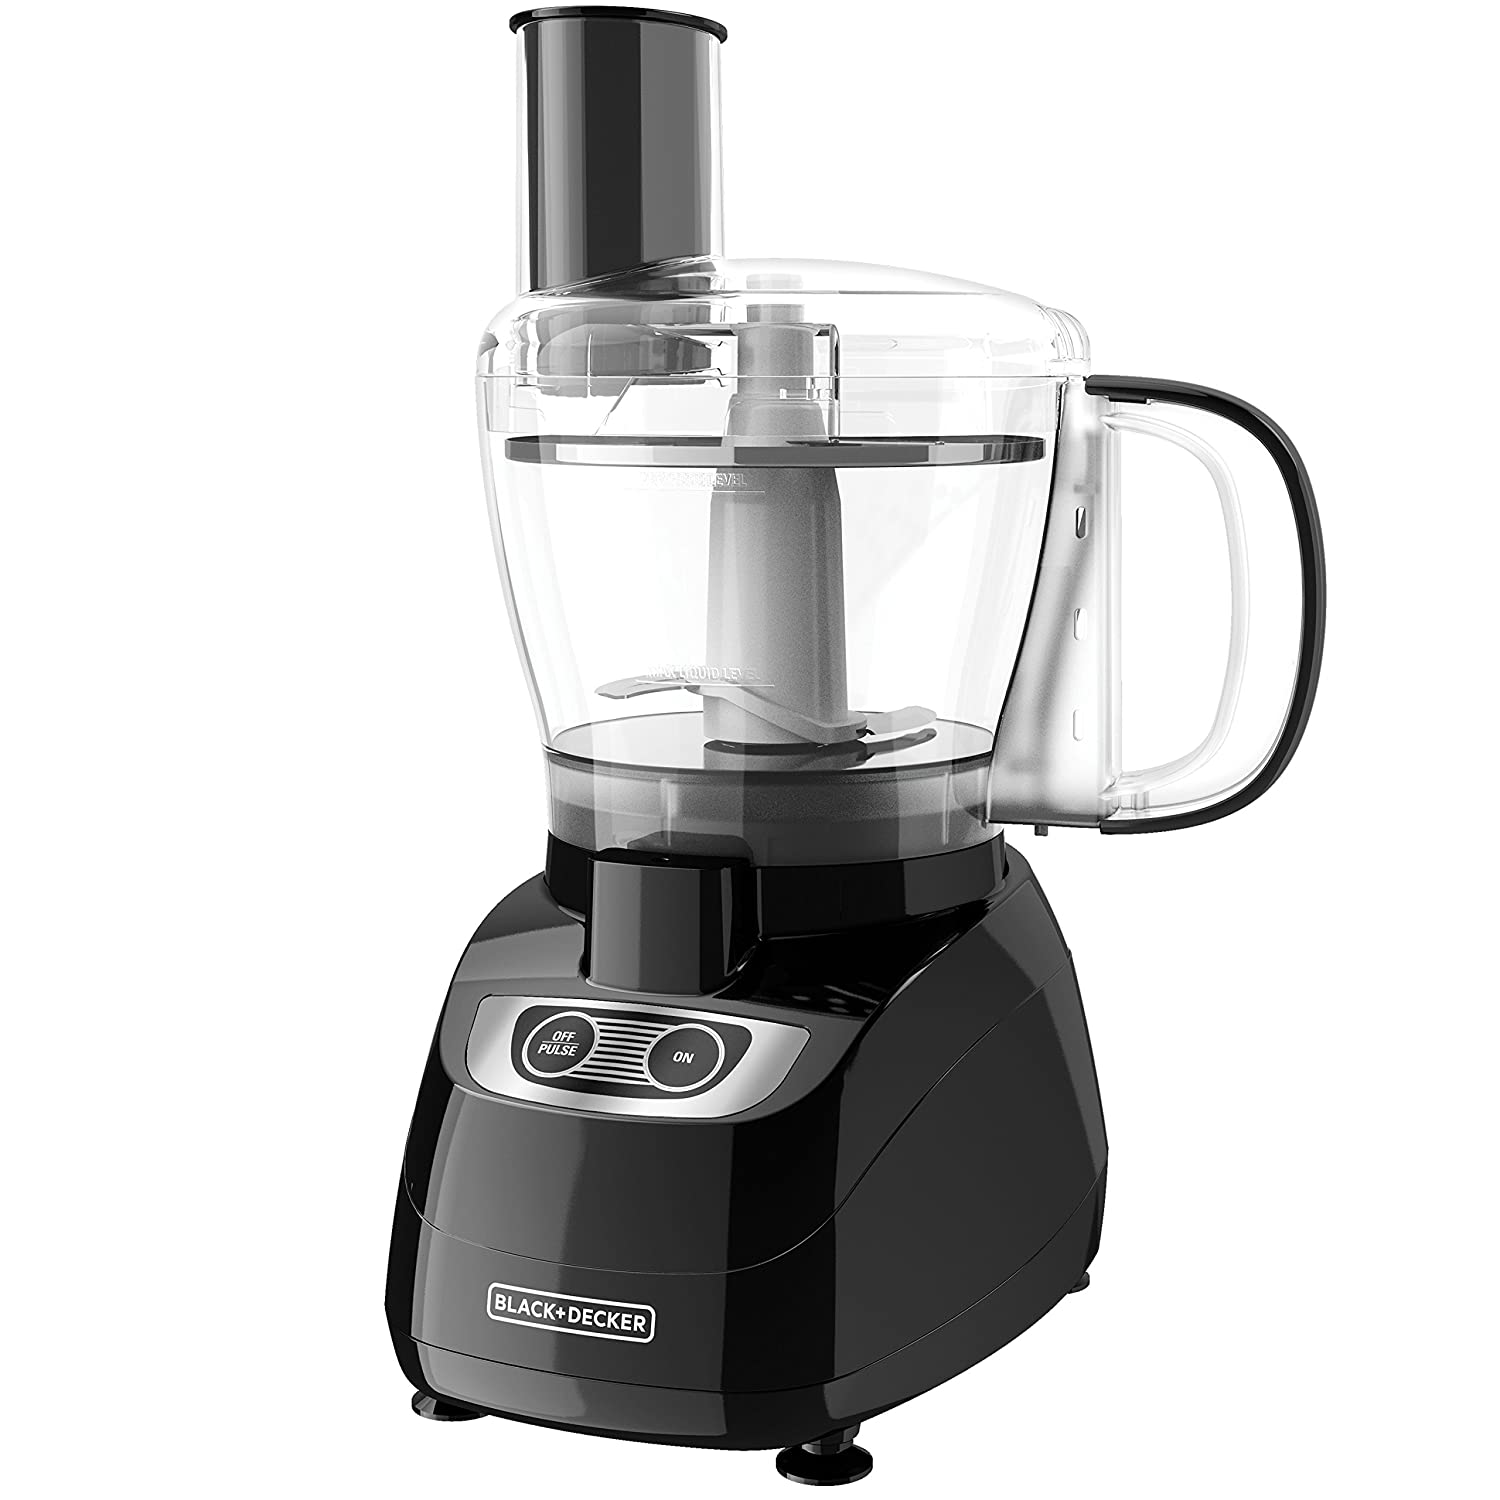 BLACK+DECKER 8-Cup Food Processor, Black, FP1700B